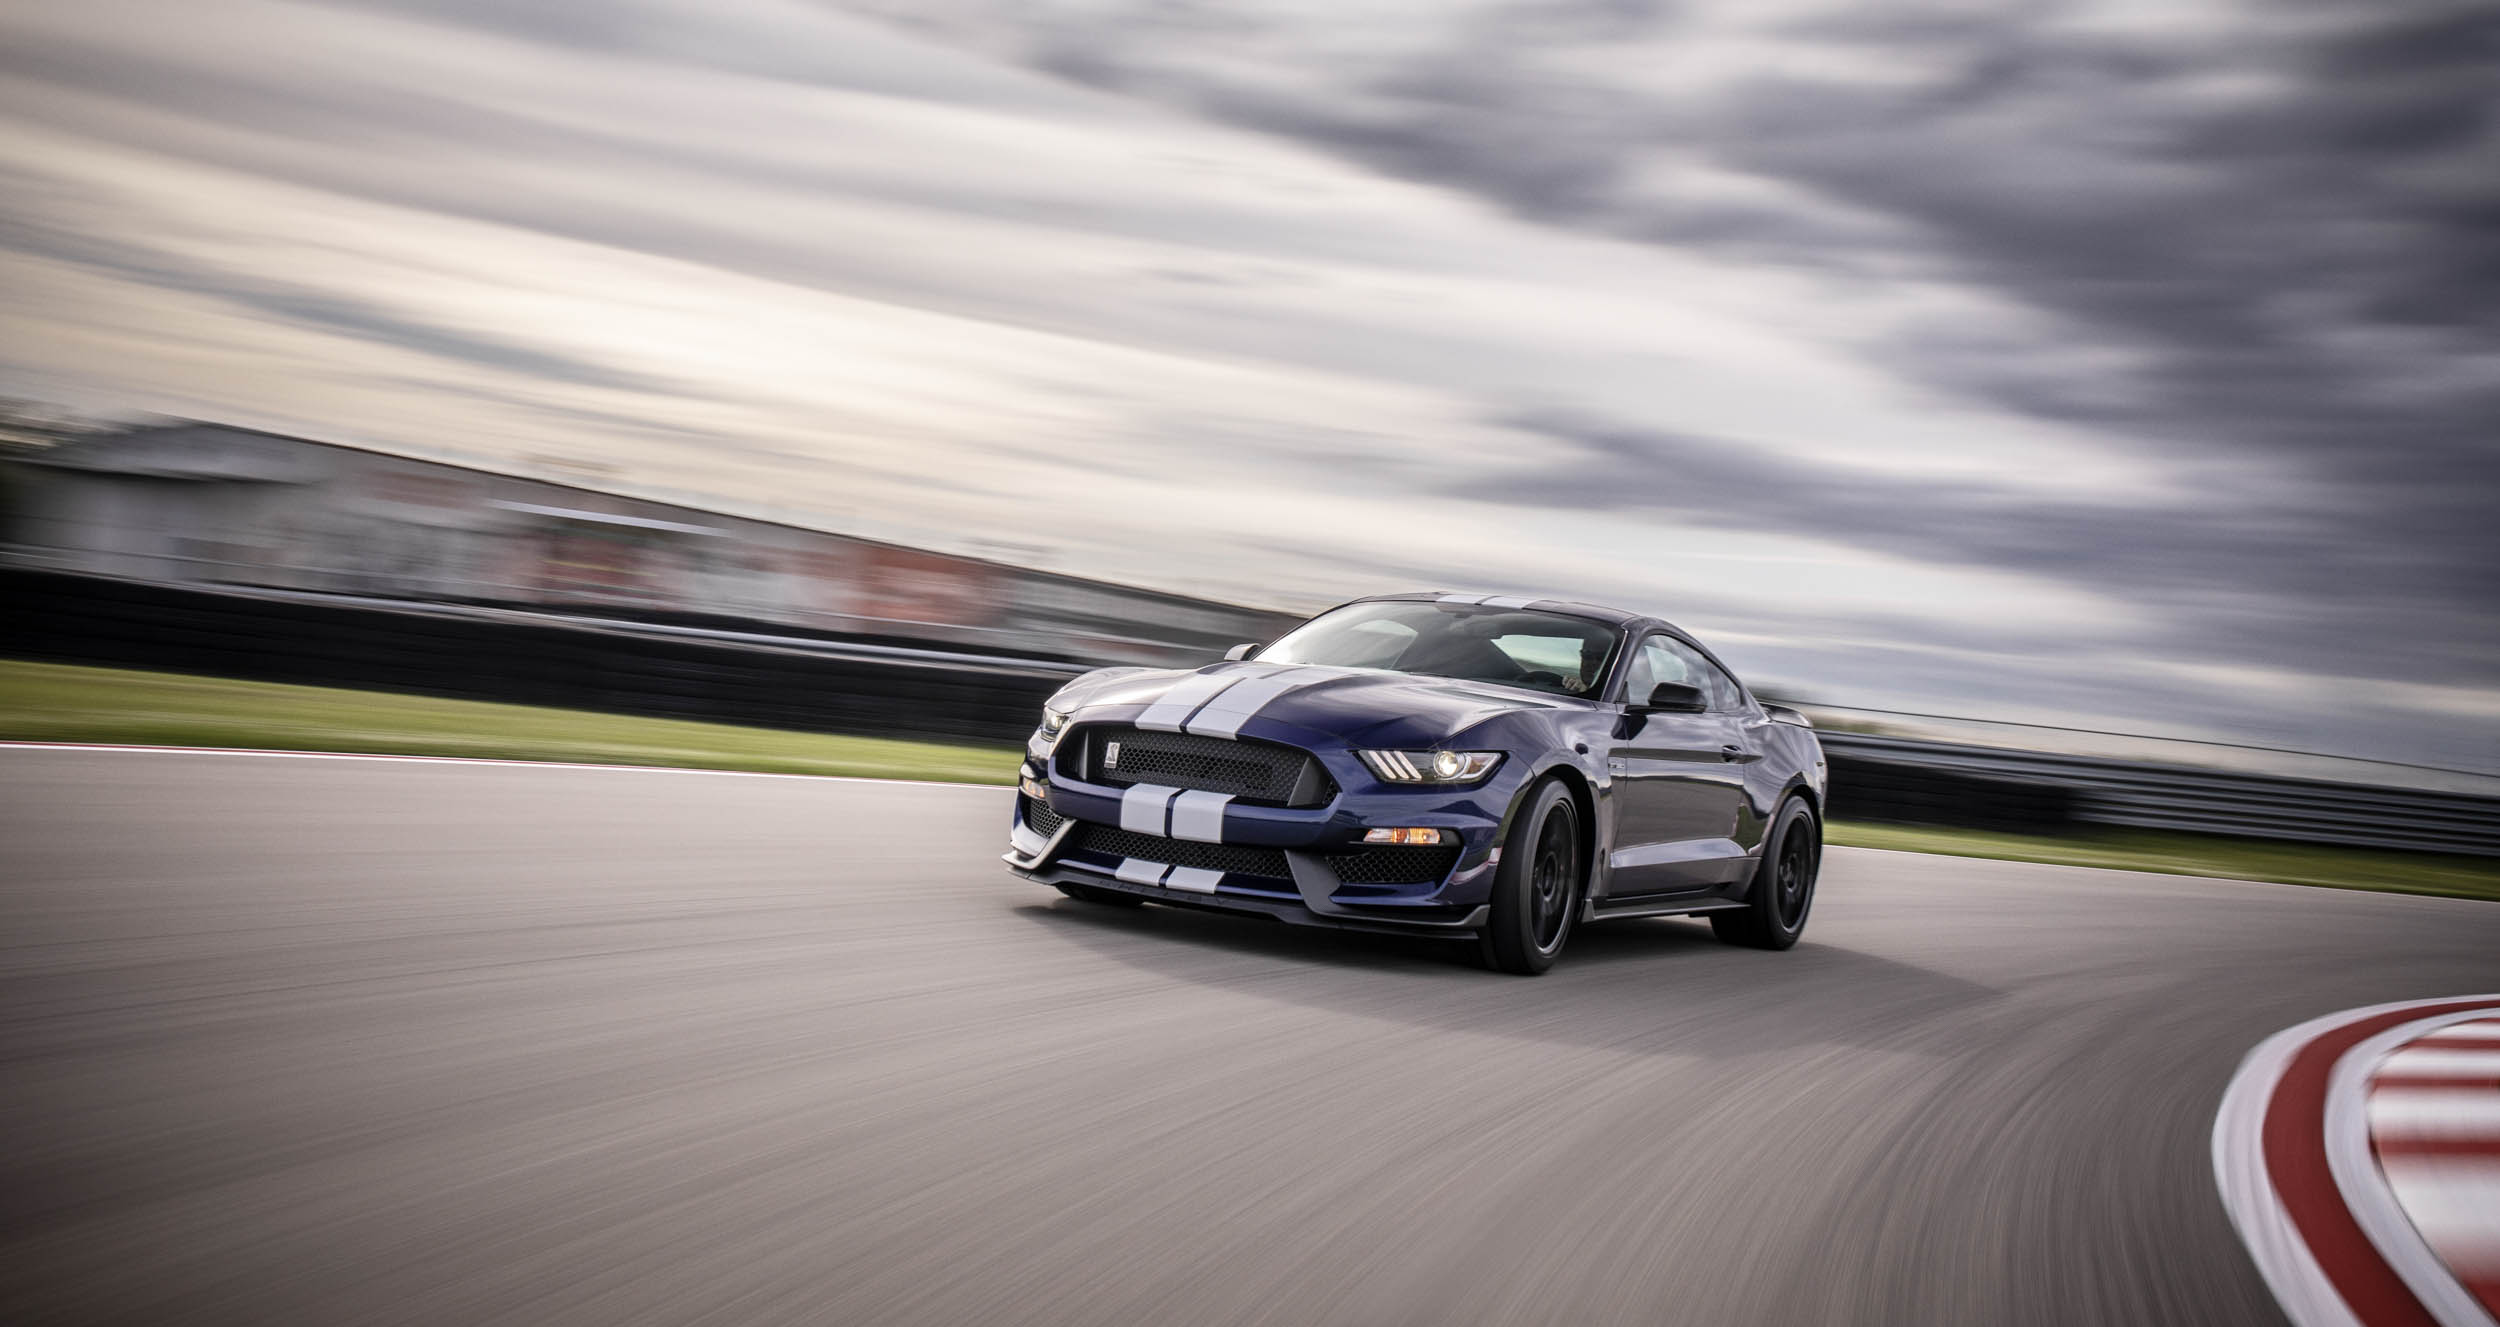 2019 Shelby GT350 on the track